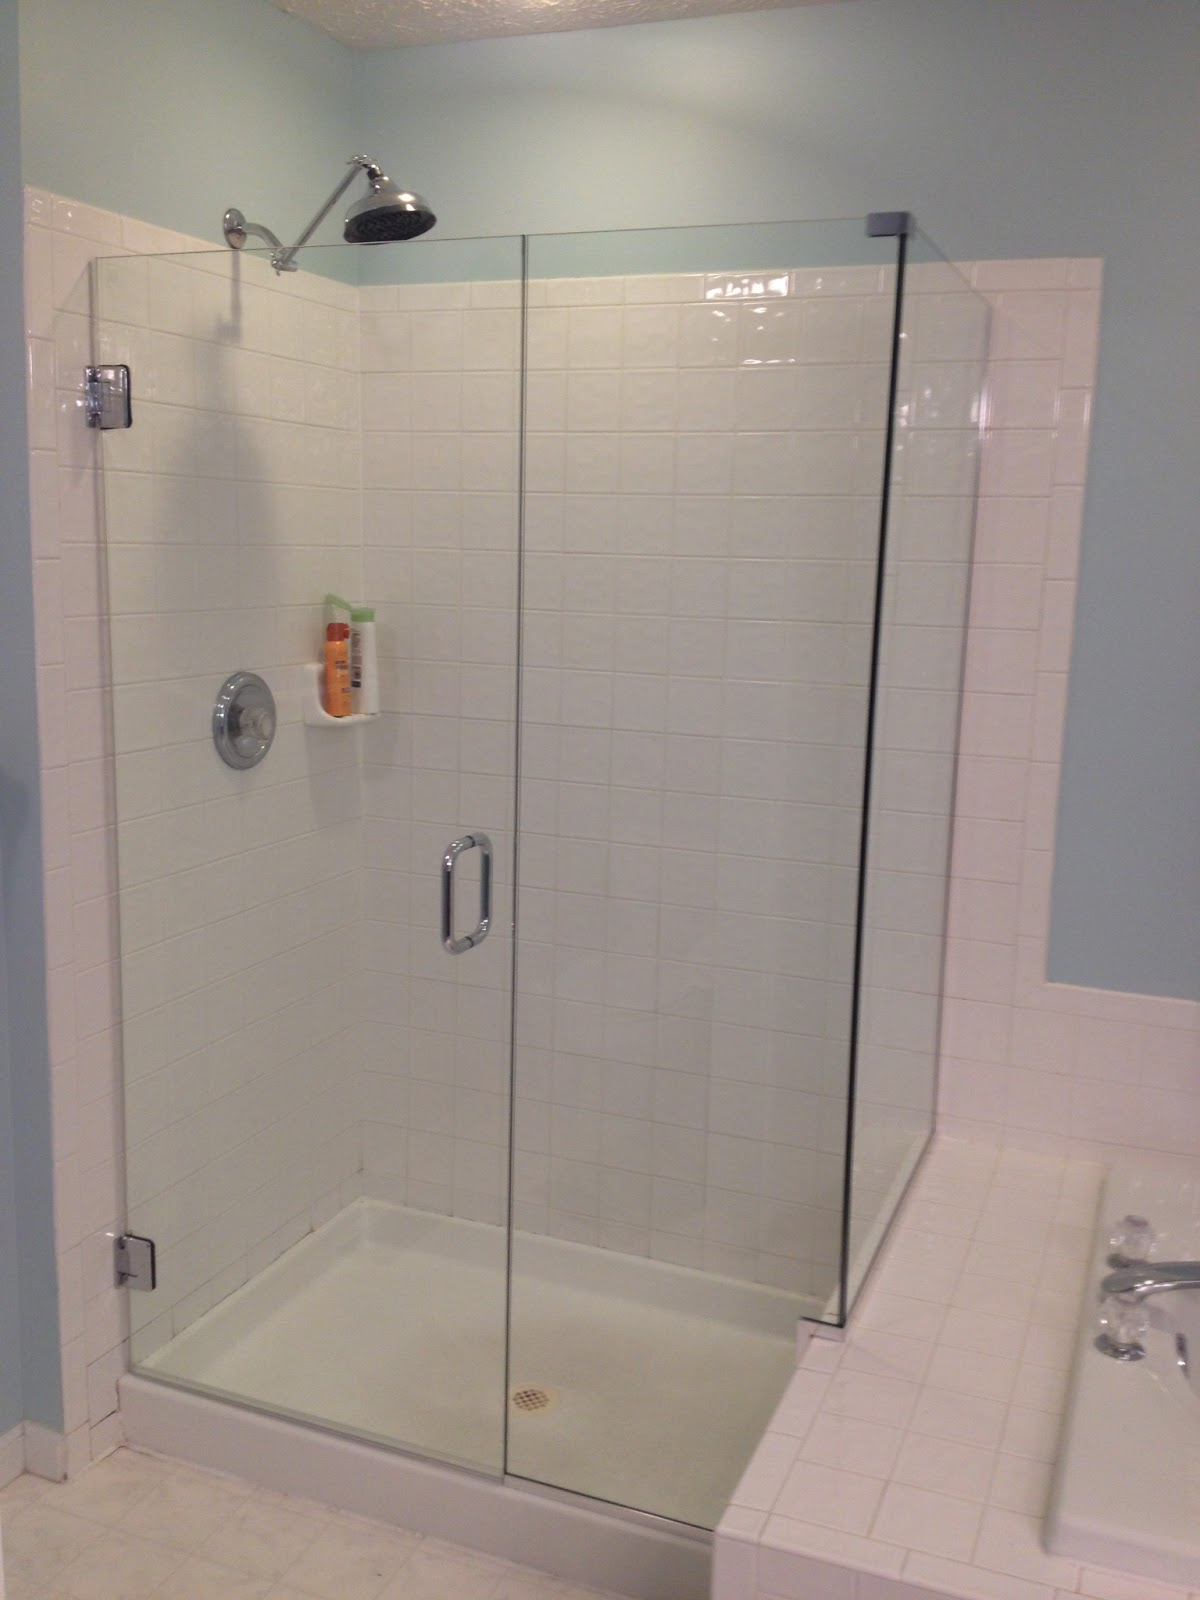 How much does a Frameless Shower Door Cost?